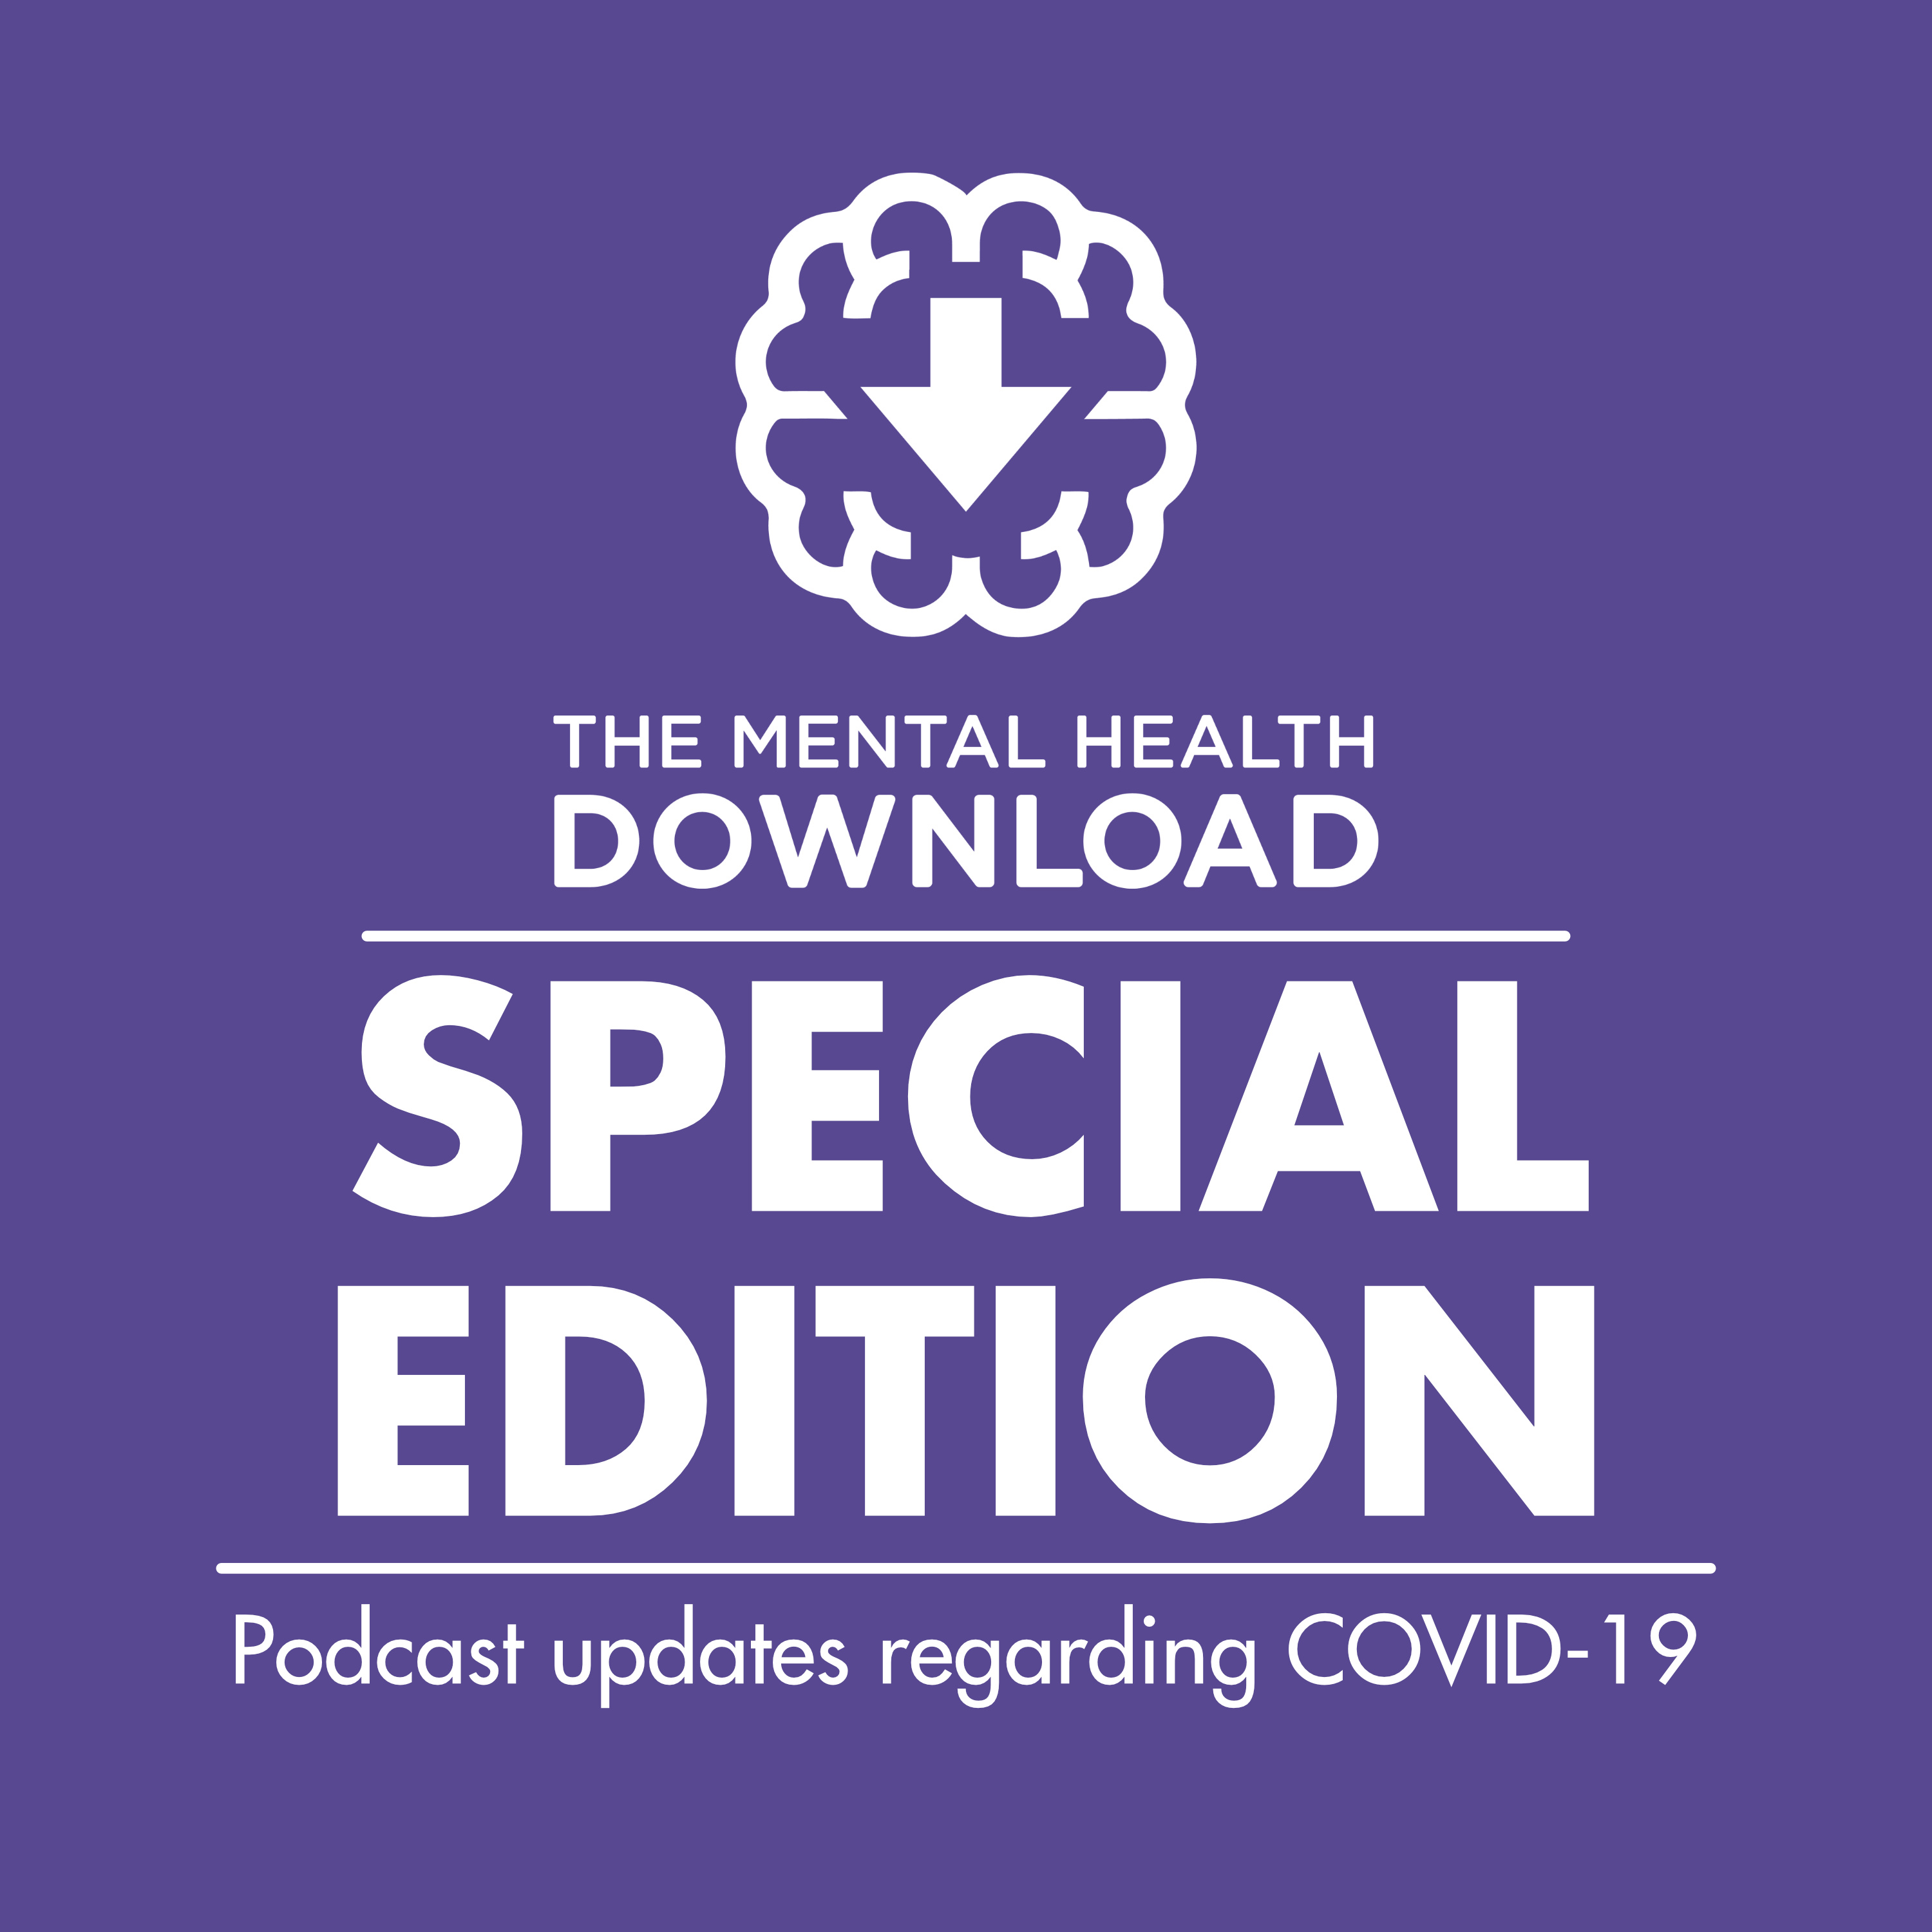 Mental Health Download: Exploring Mental Illness, Suicide, Homelessness and Incarceration - COVID-19: Dr. Sara Coffey on Youth Mental Health